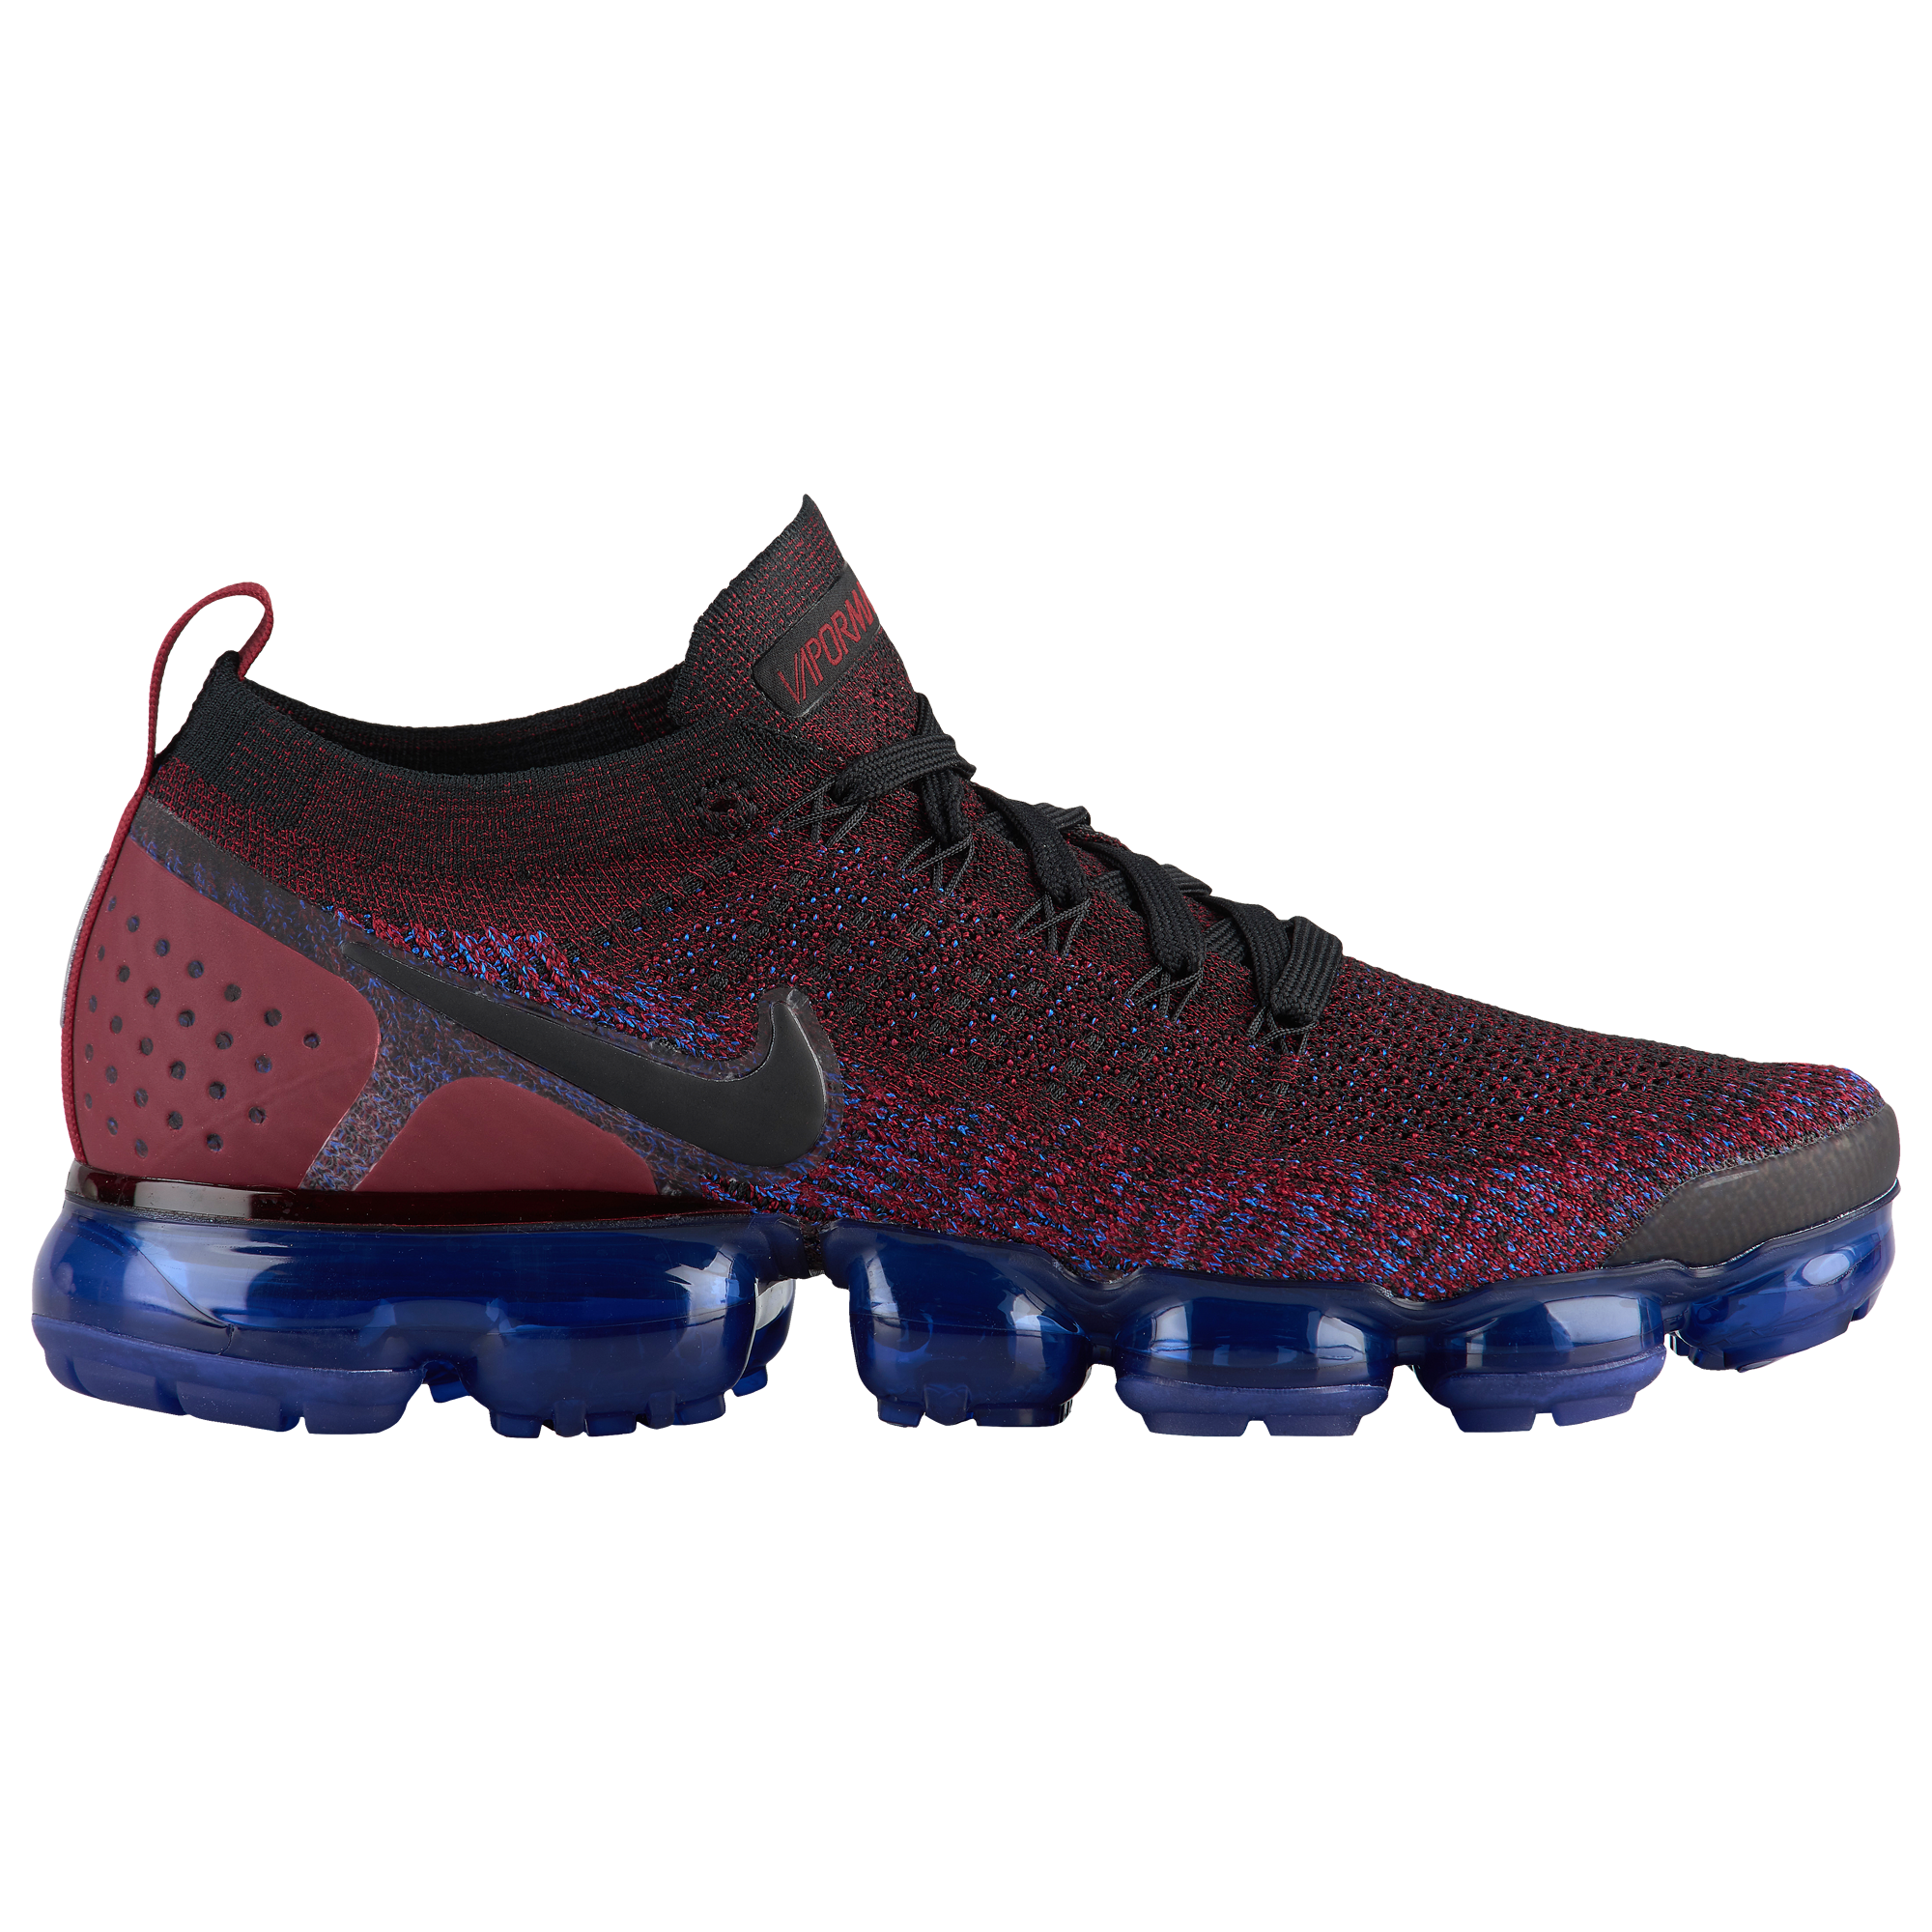 f8309b2013c08 Men s Nike Air Vapormax Flyknit 2 - Black Black Team Red Racer Blue -  42842006 -  Nike  AirMax  NikeAirMax  footaction  Training  Fitness   PersonalTraining ...